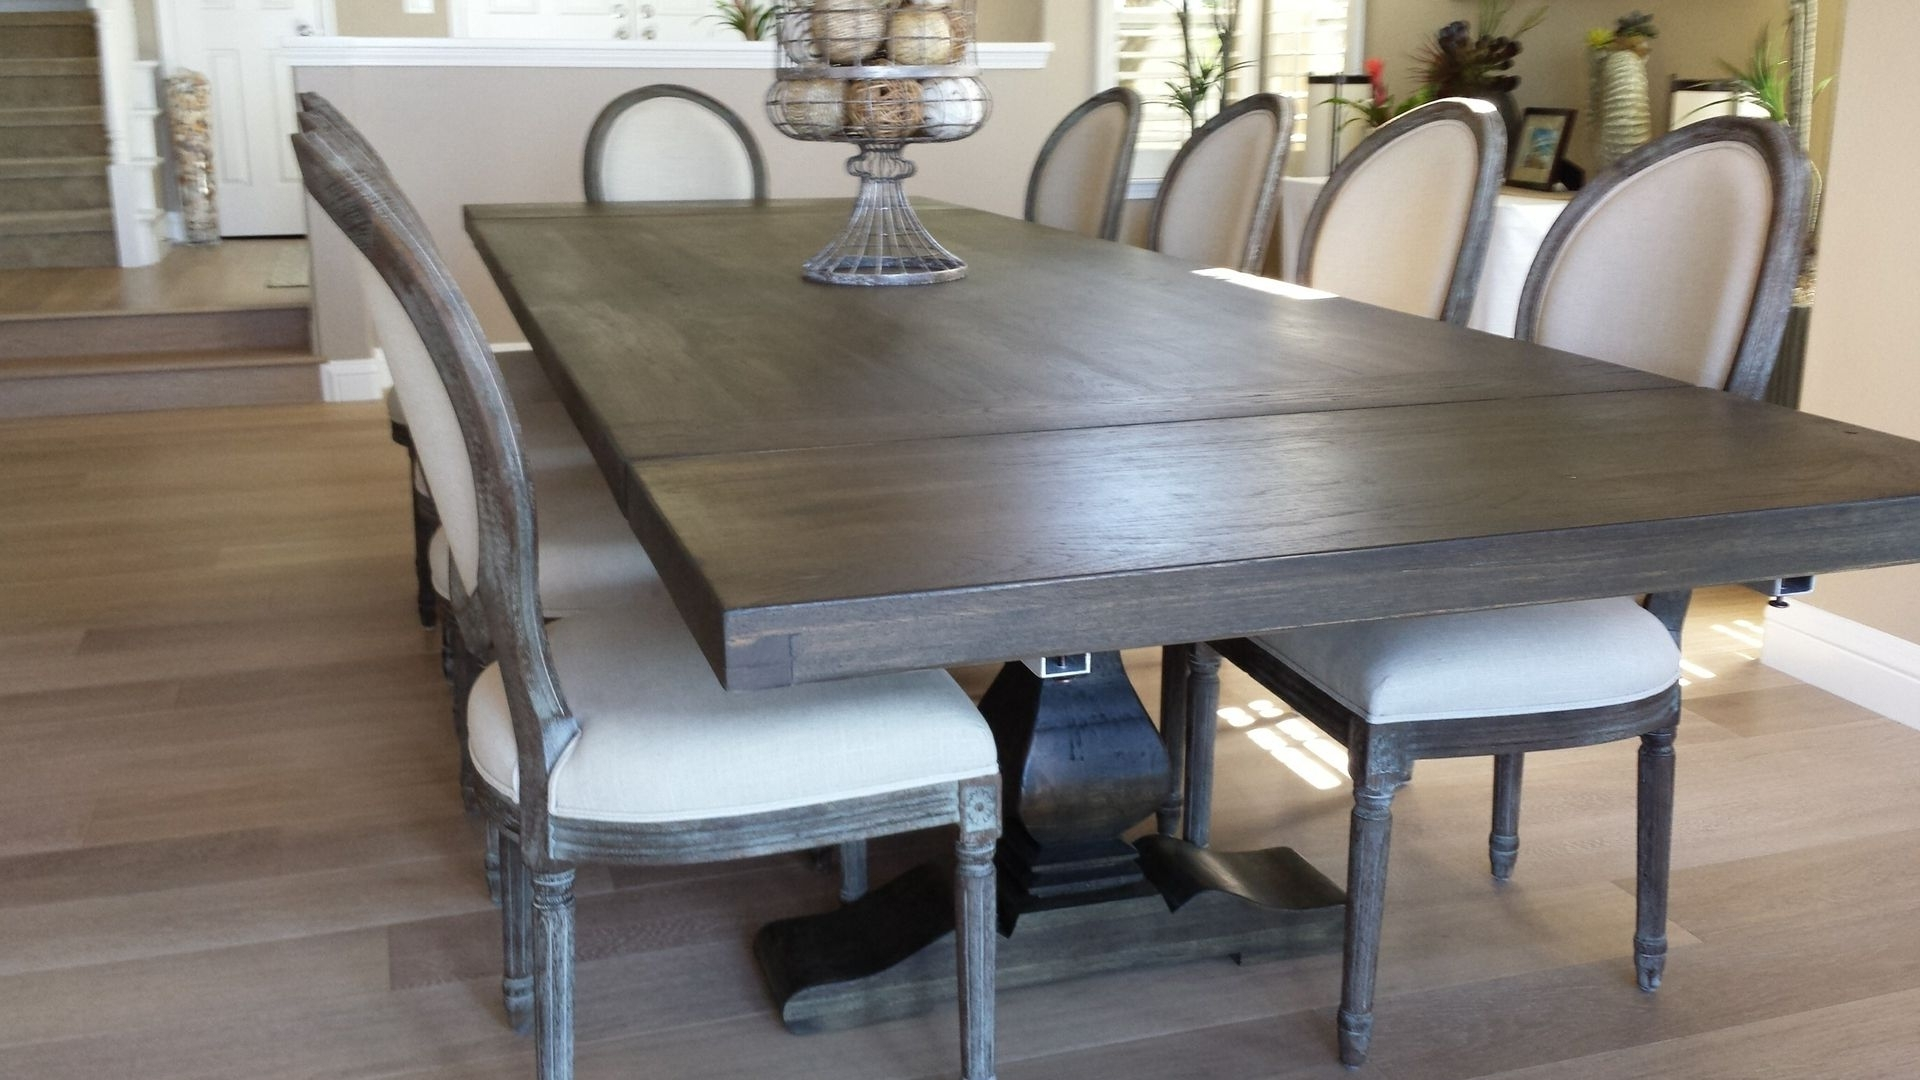 Popular Glamorous Extendable Dining Room Table For 12 Chairs Licious Round Intended For Extendable Dining Room Tables And Chairs (View 11 of 25)